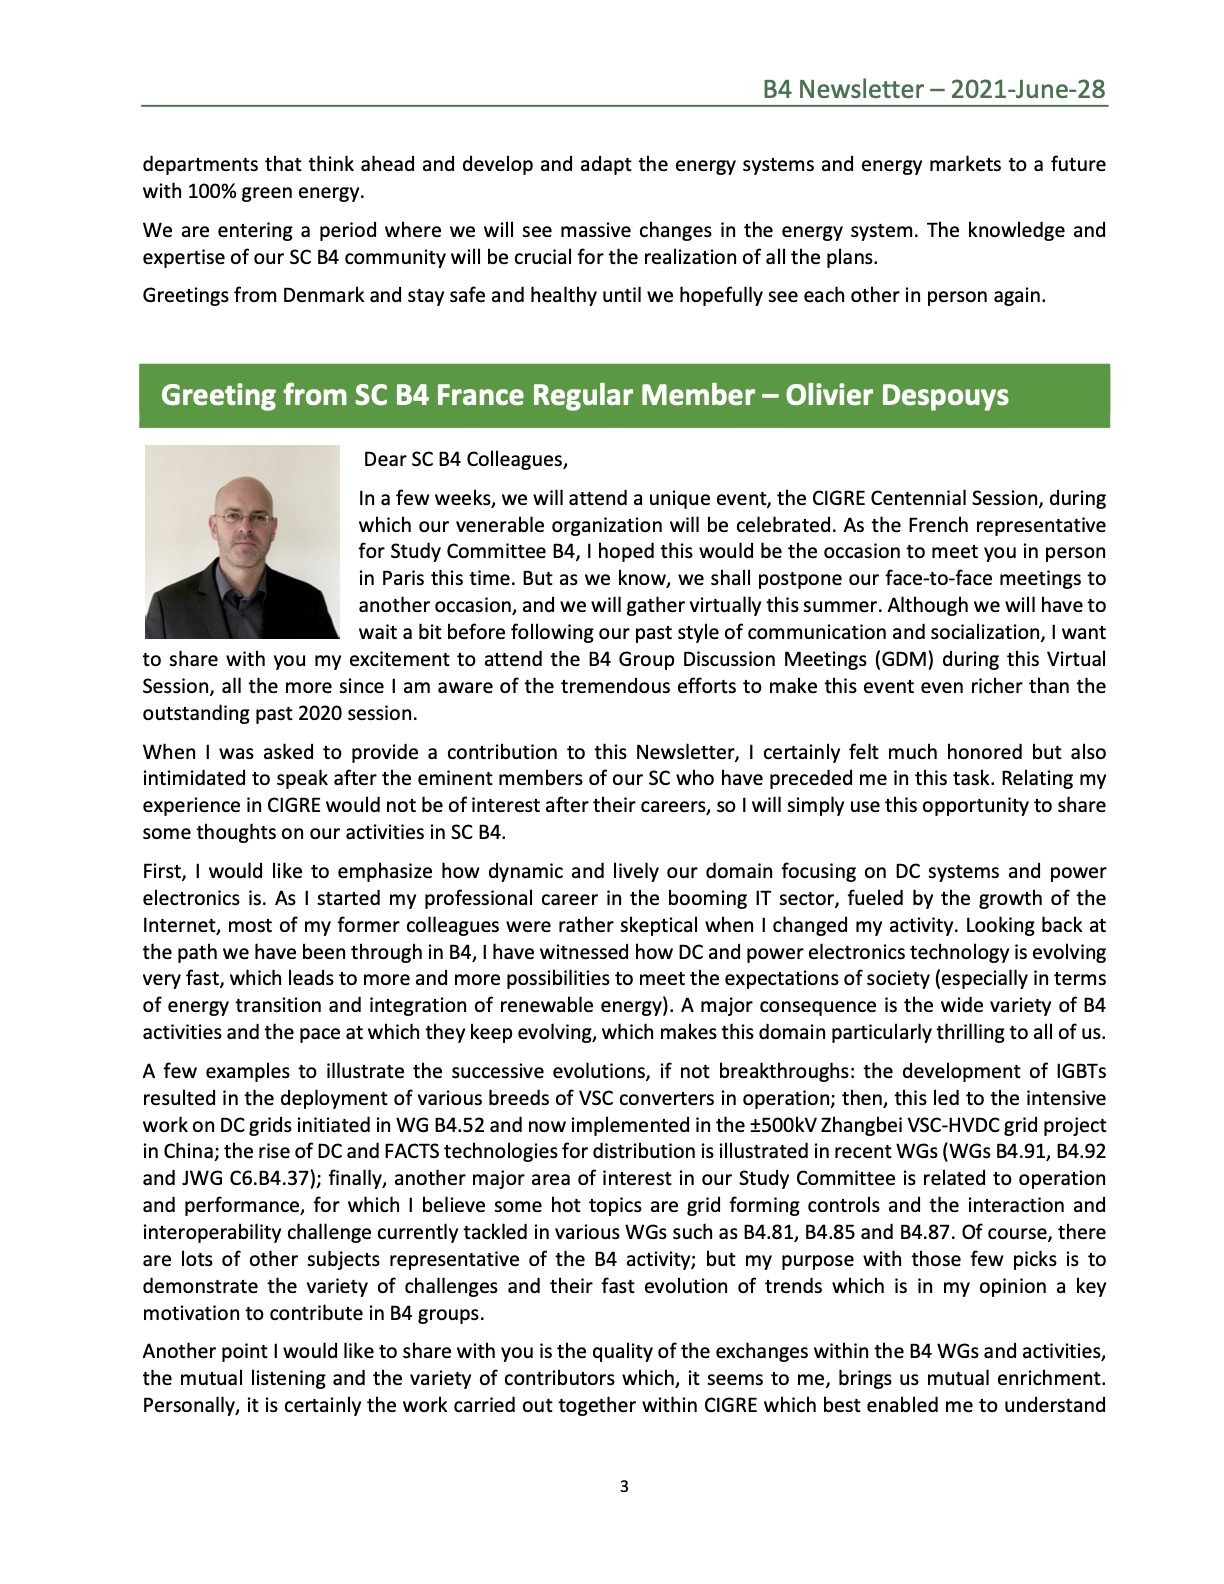 B4Newsletter_2021-June-28_Page3